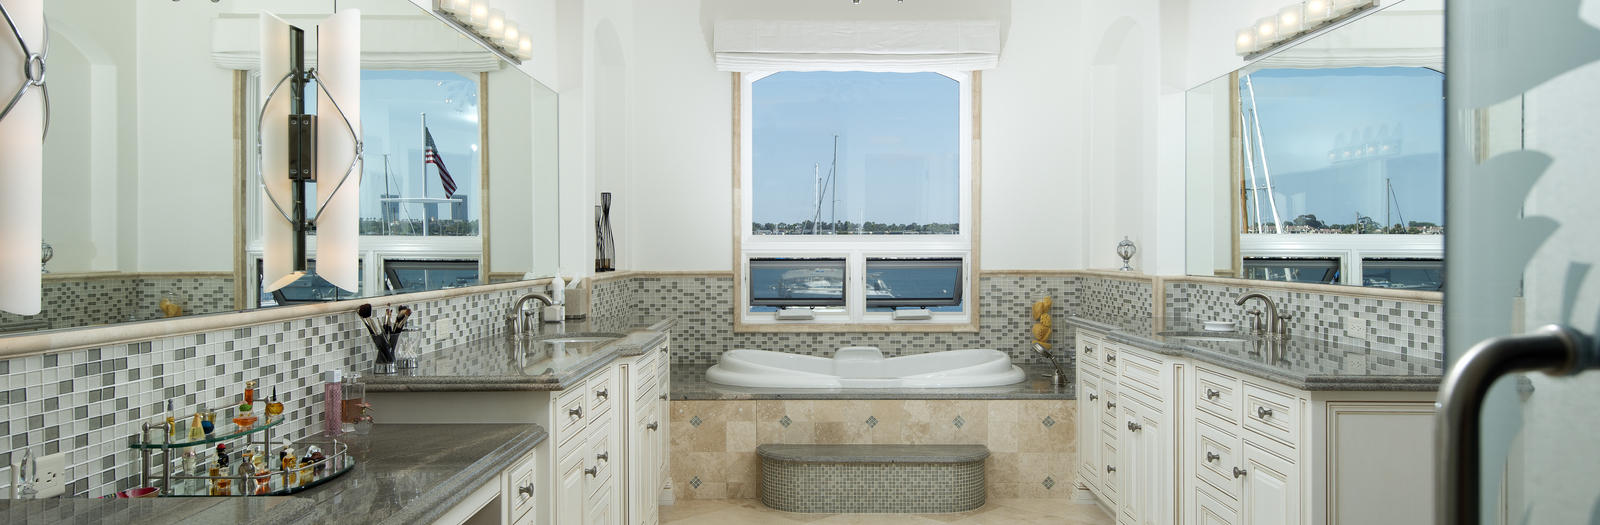 Cape Cod Bathroom with jacuzzi tub with tile surround